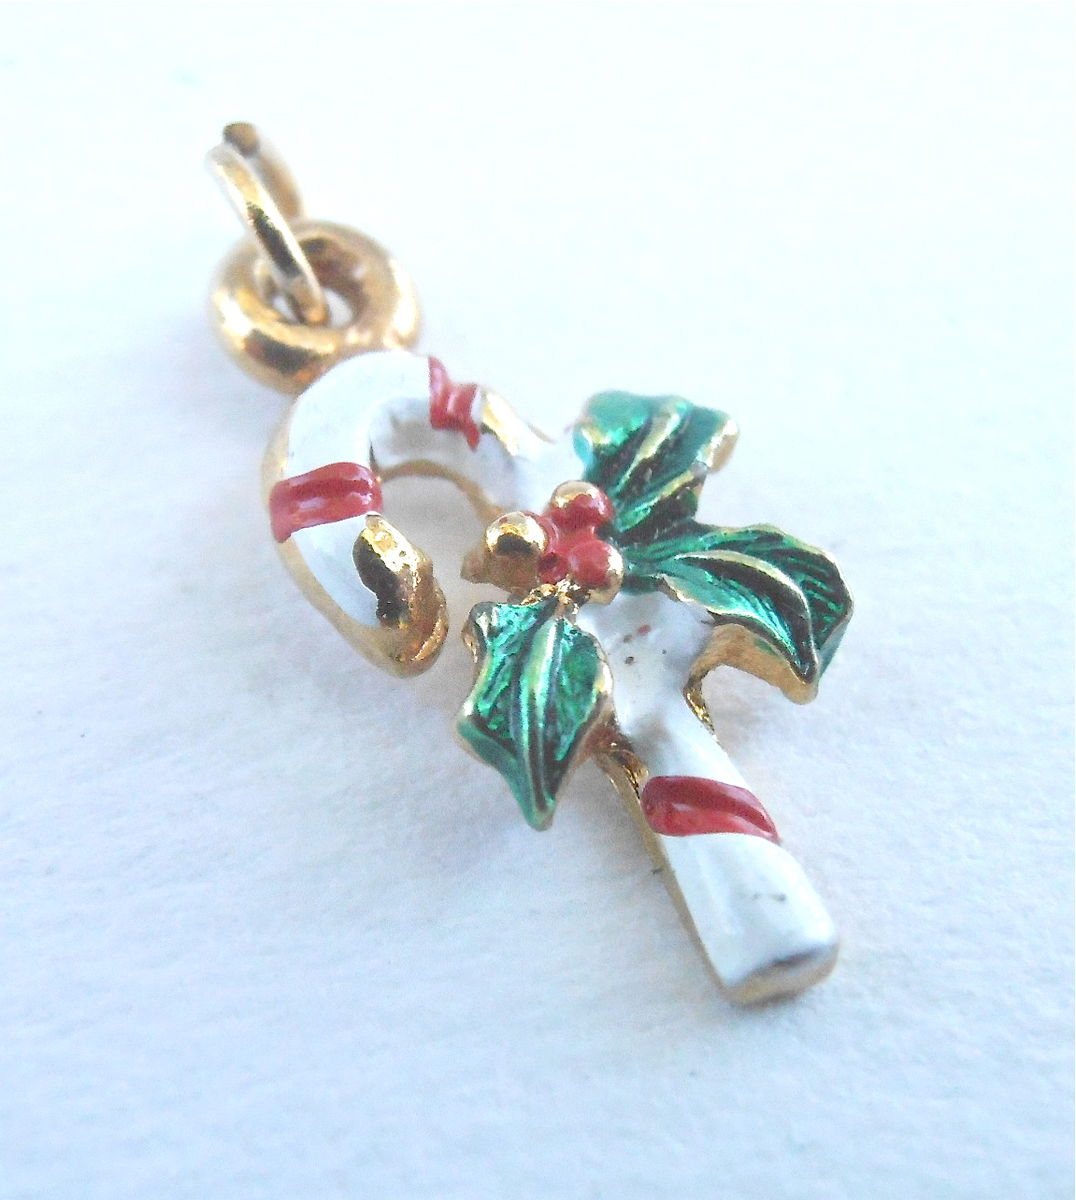 Vintage TINY Christmas Candy Cane Pendant Charm Red White Stripes Peppermint Holly Berries Holiday Season Xmas Gold Tone Mini Miniature - product images  of